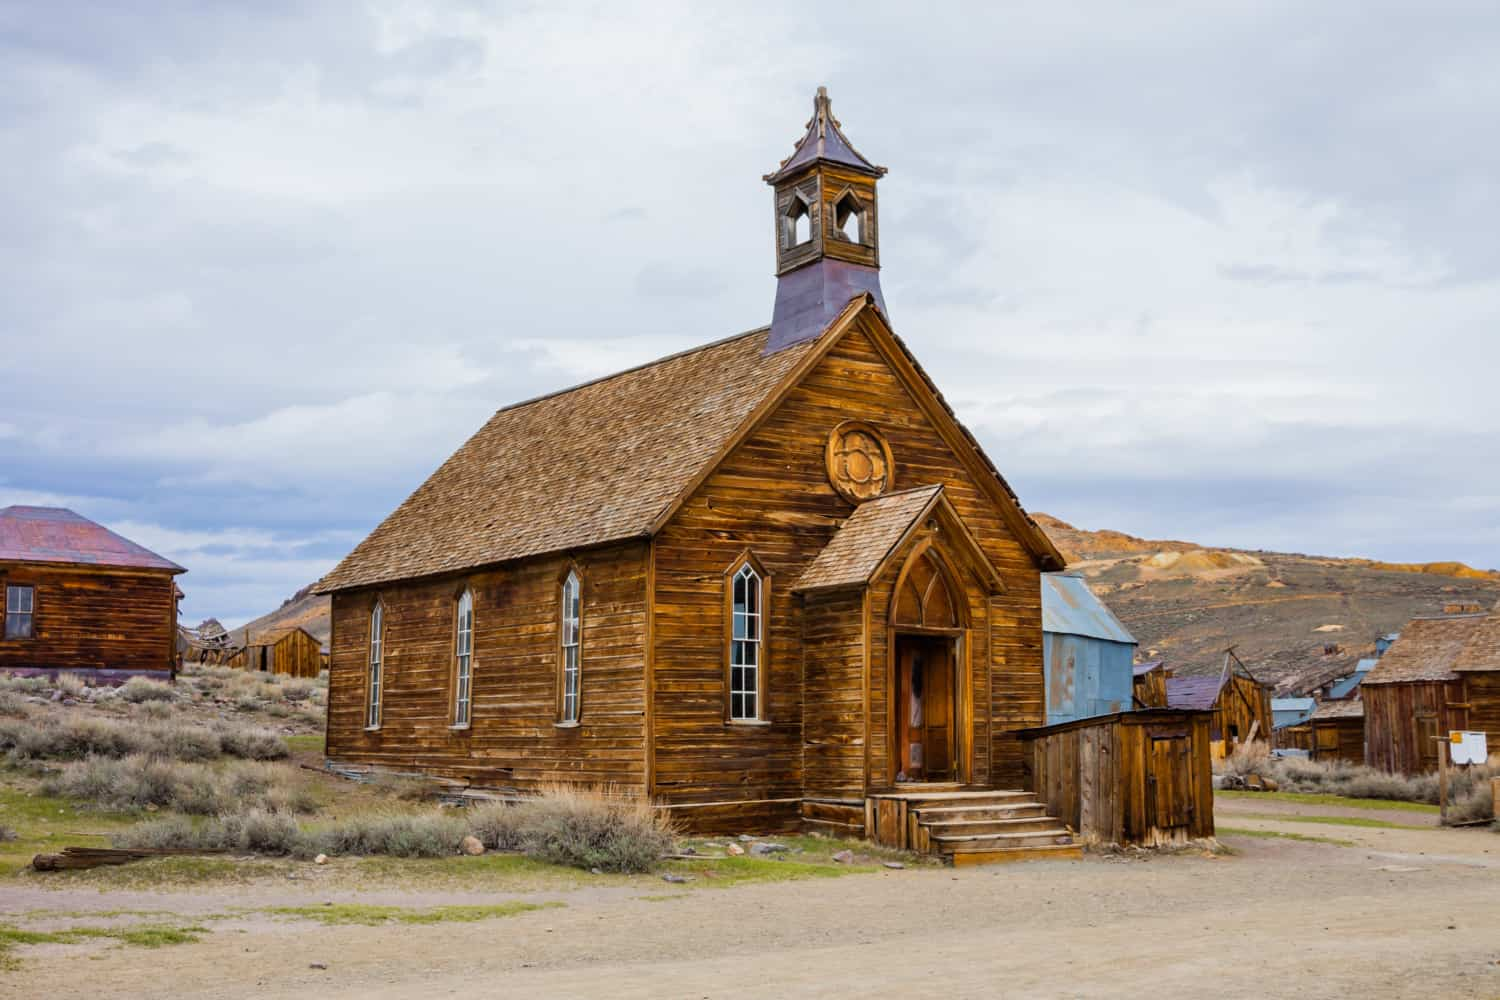 The church at pet friendly Bodie Ghost Town in California